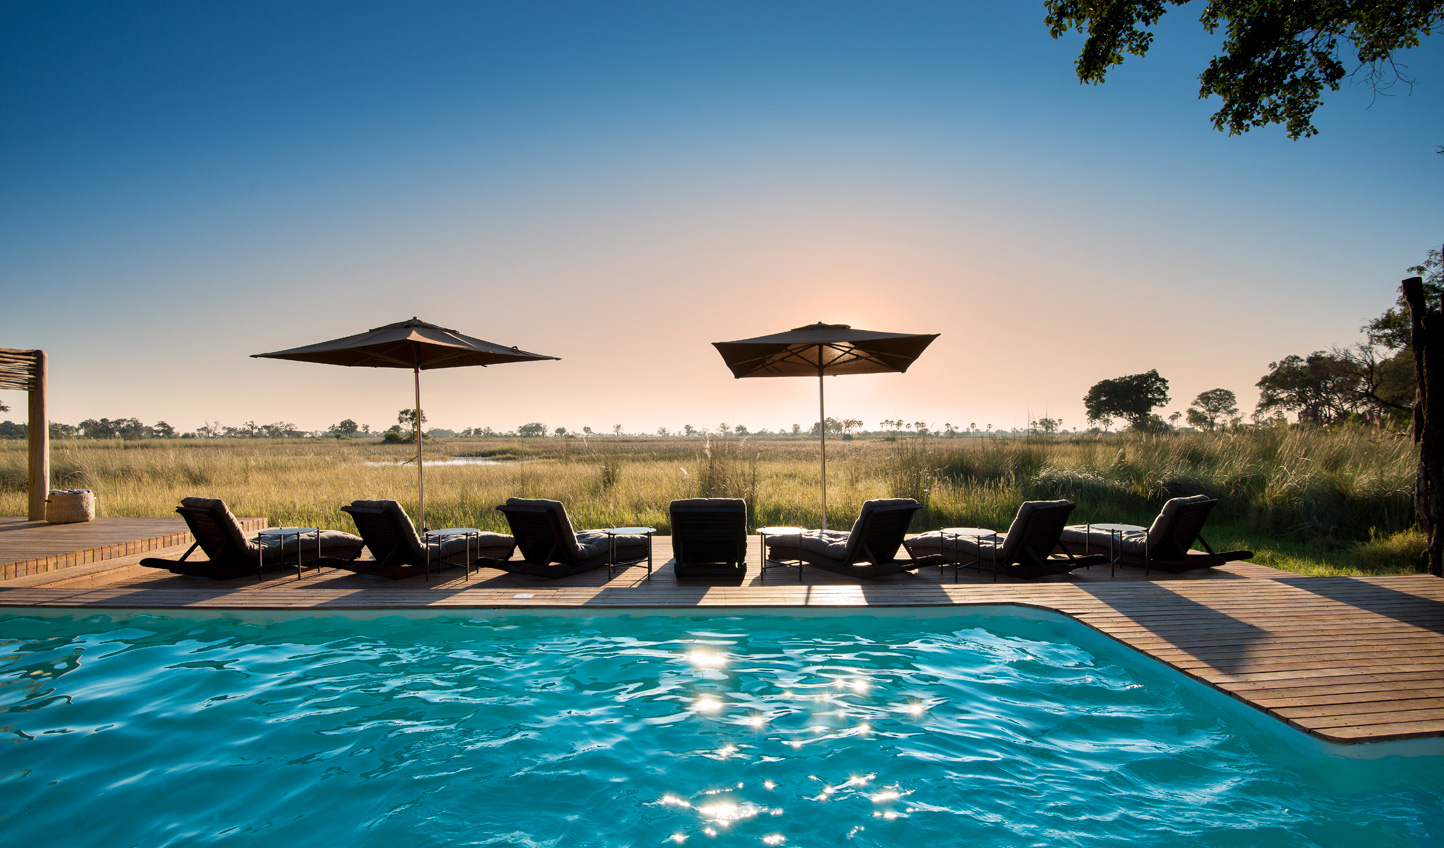 Spend an afternoon cooling off by the pool